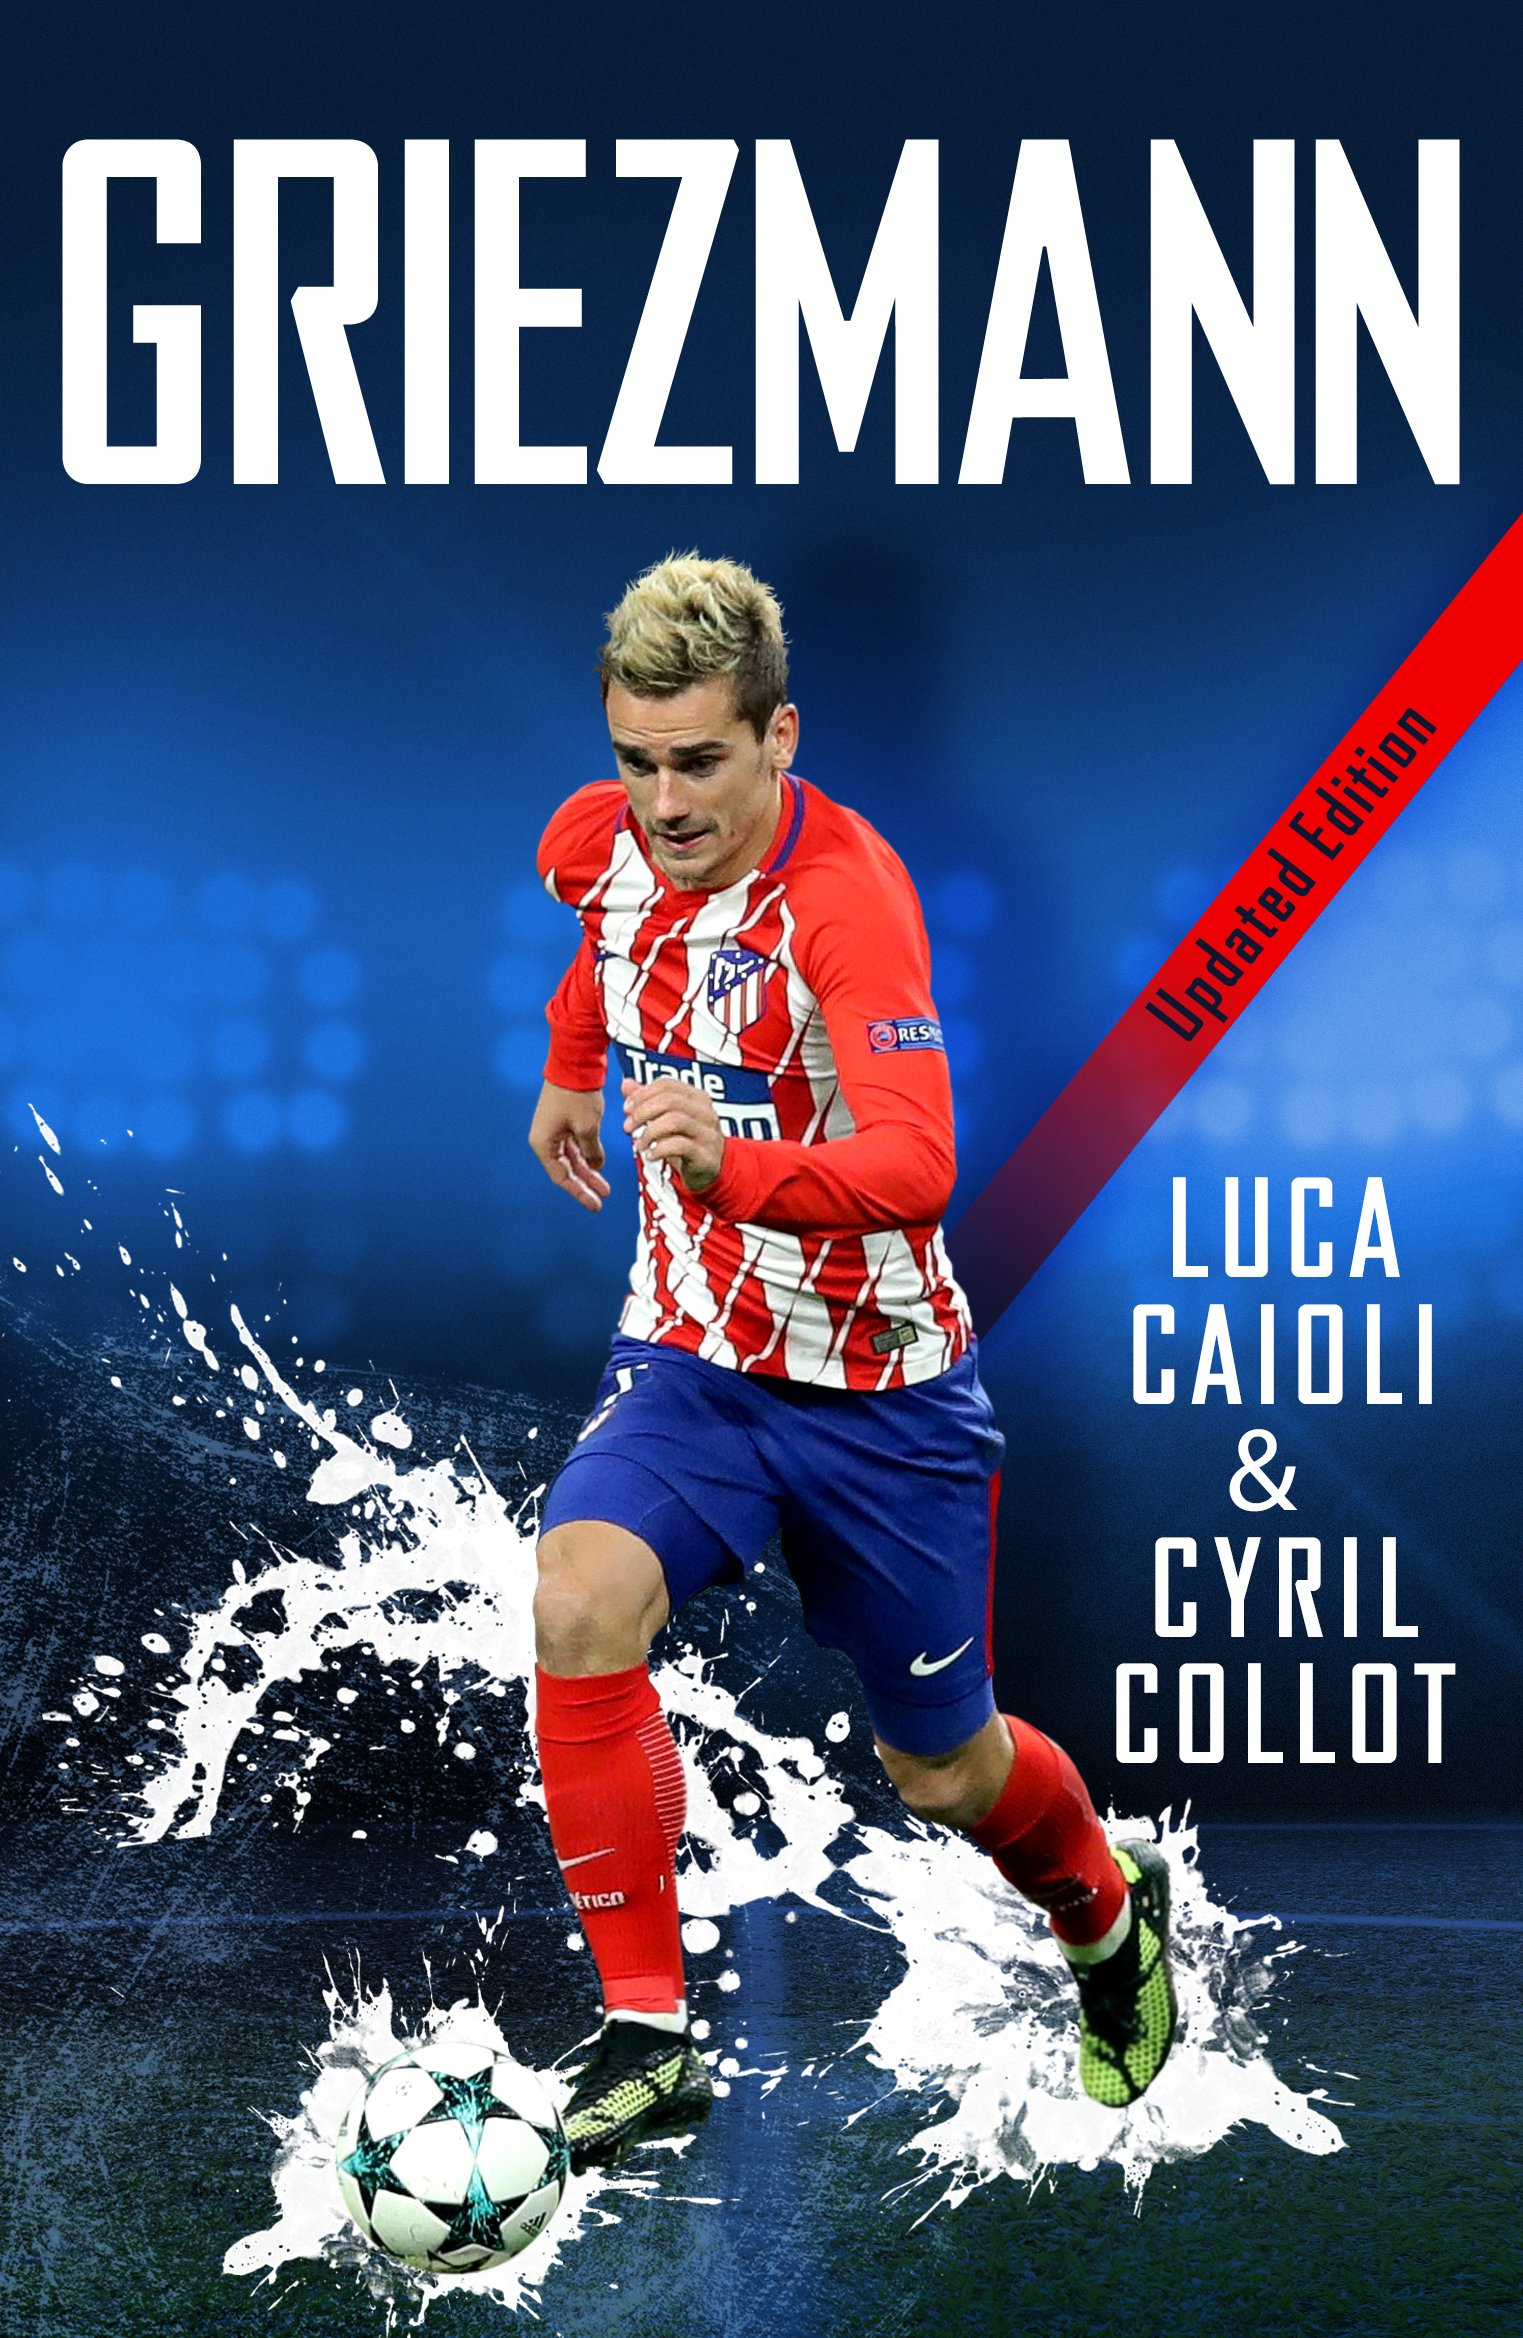 griezmann-2019-updated-edition-the-making-of-france-s-mini-maestro-luca-caioli